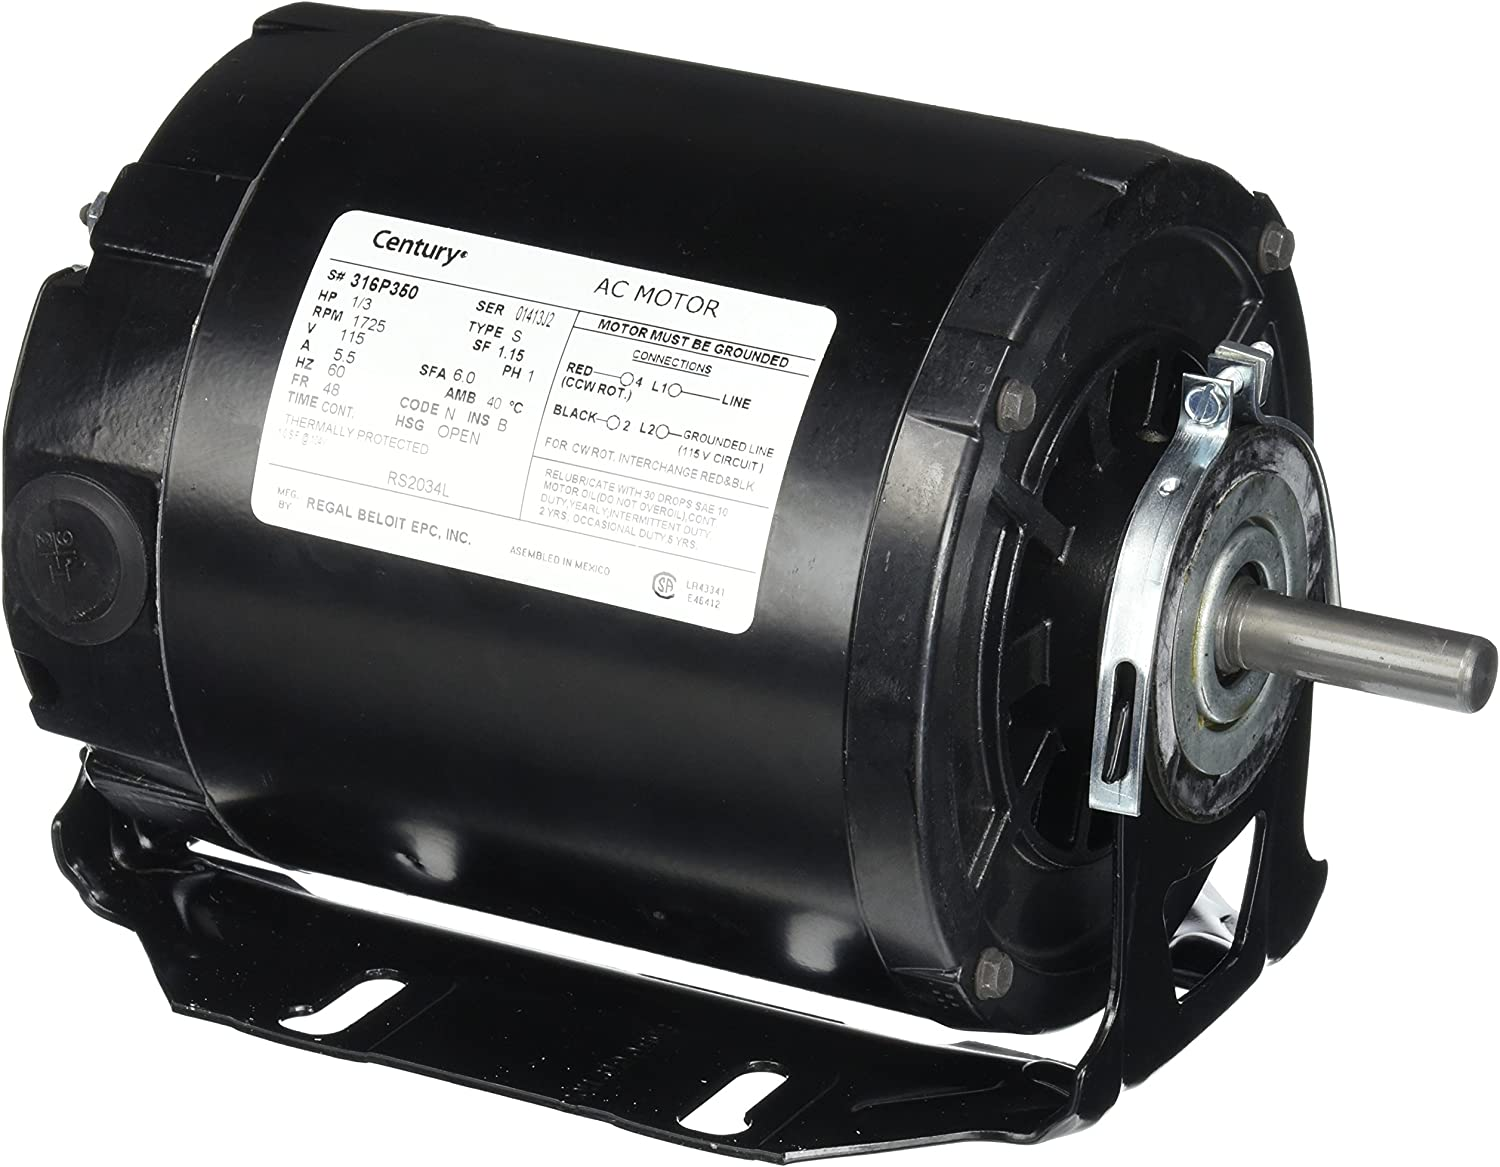 Century RS2034L 1/3 hp 1725 rpm Single Phase Belt Drive with Resilient Mount